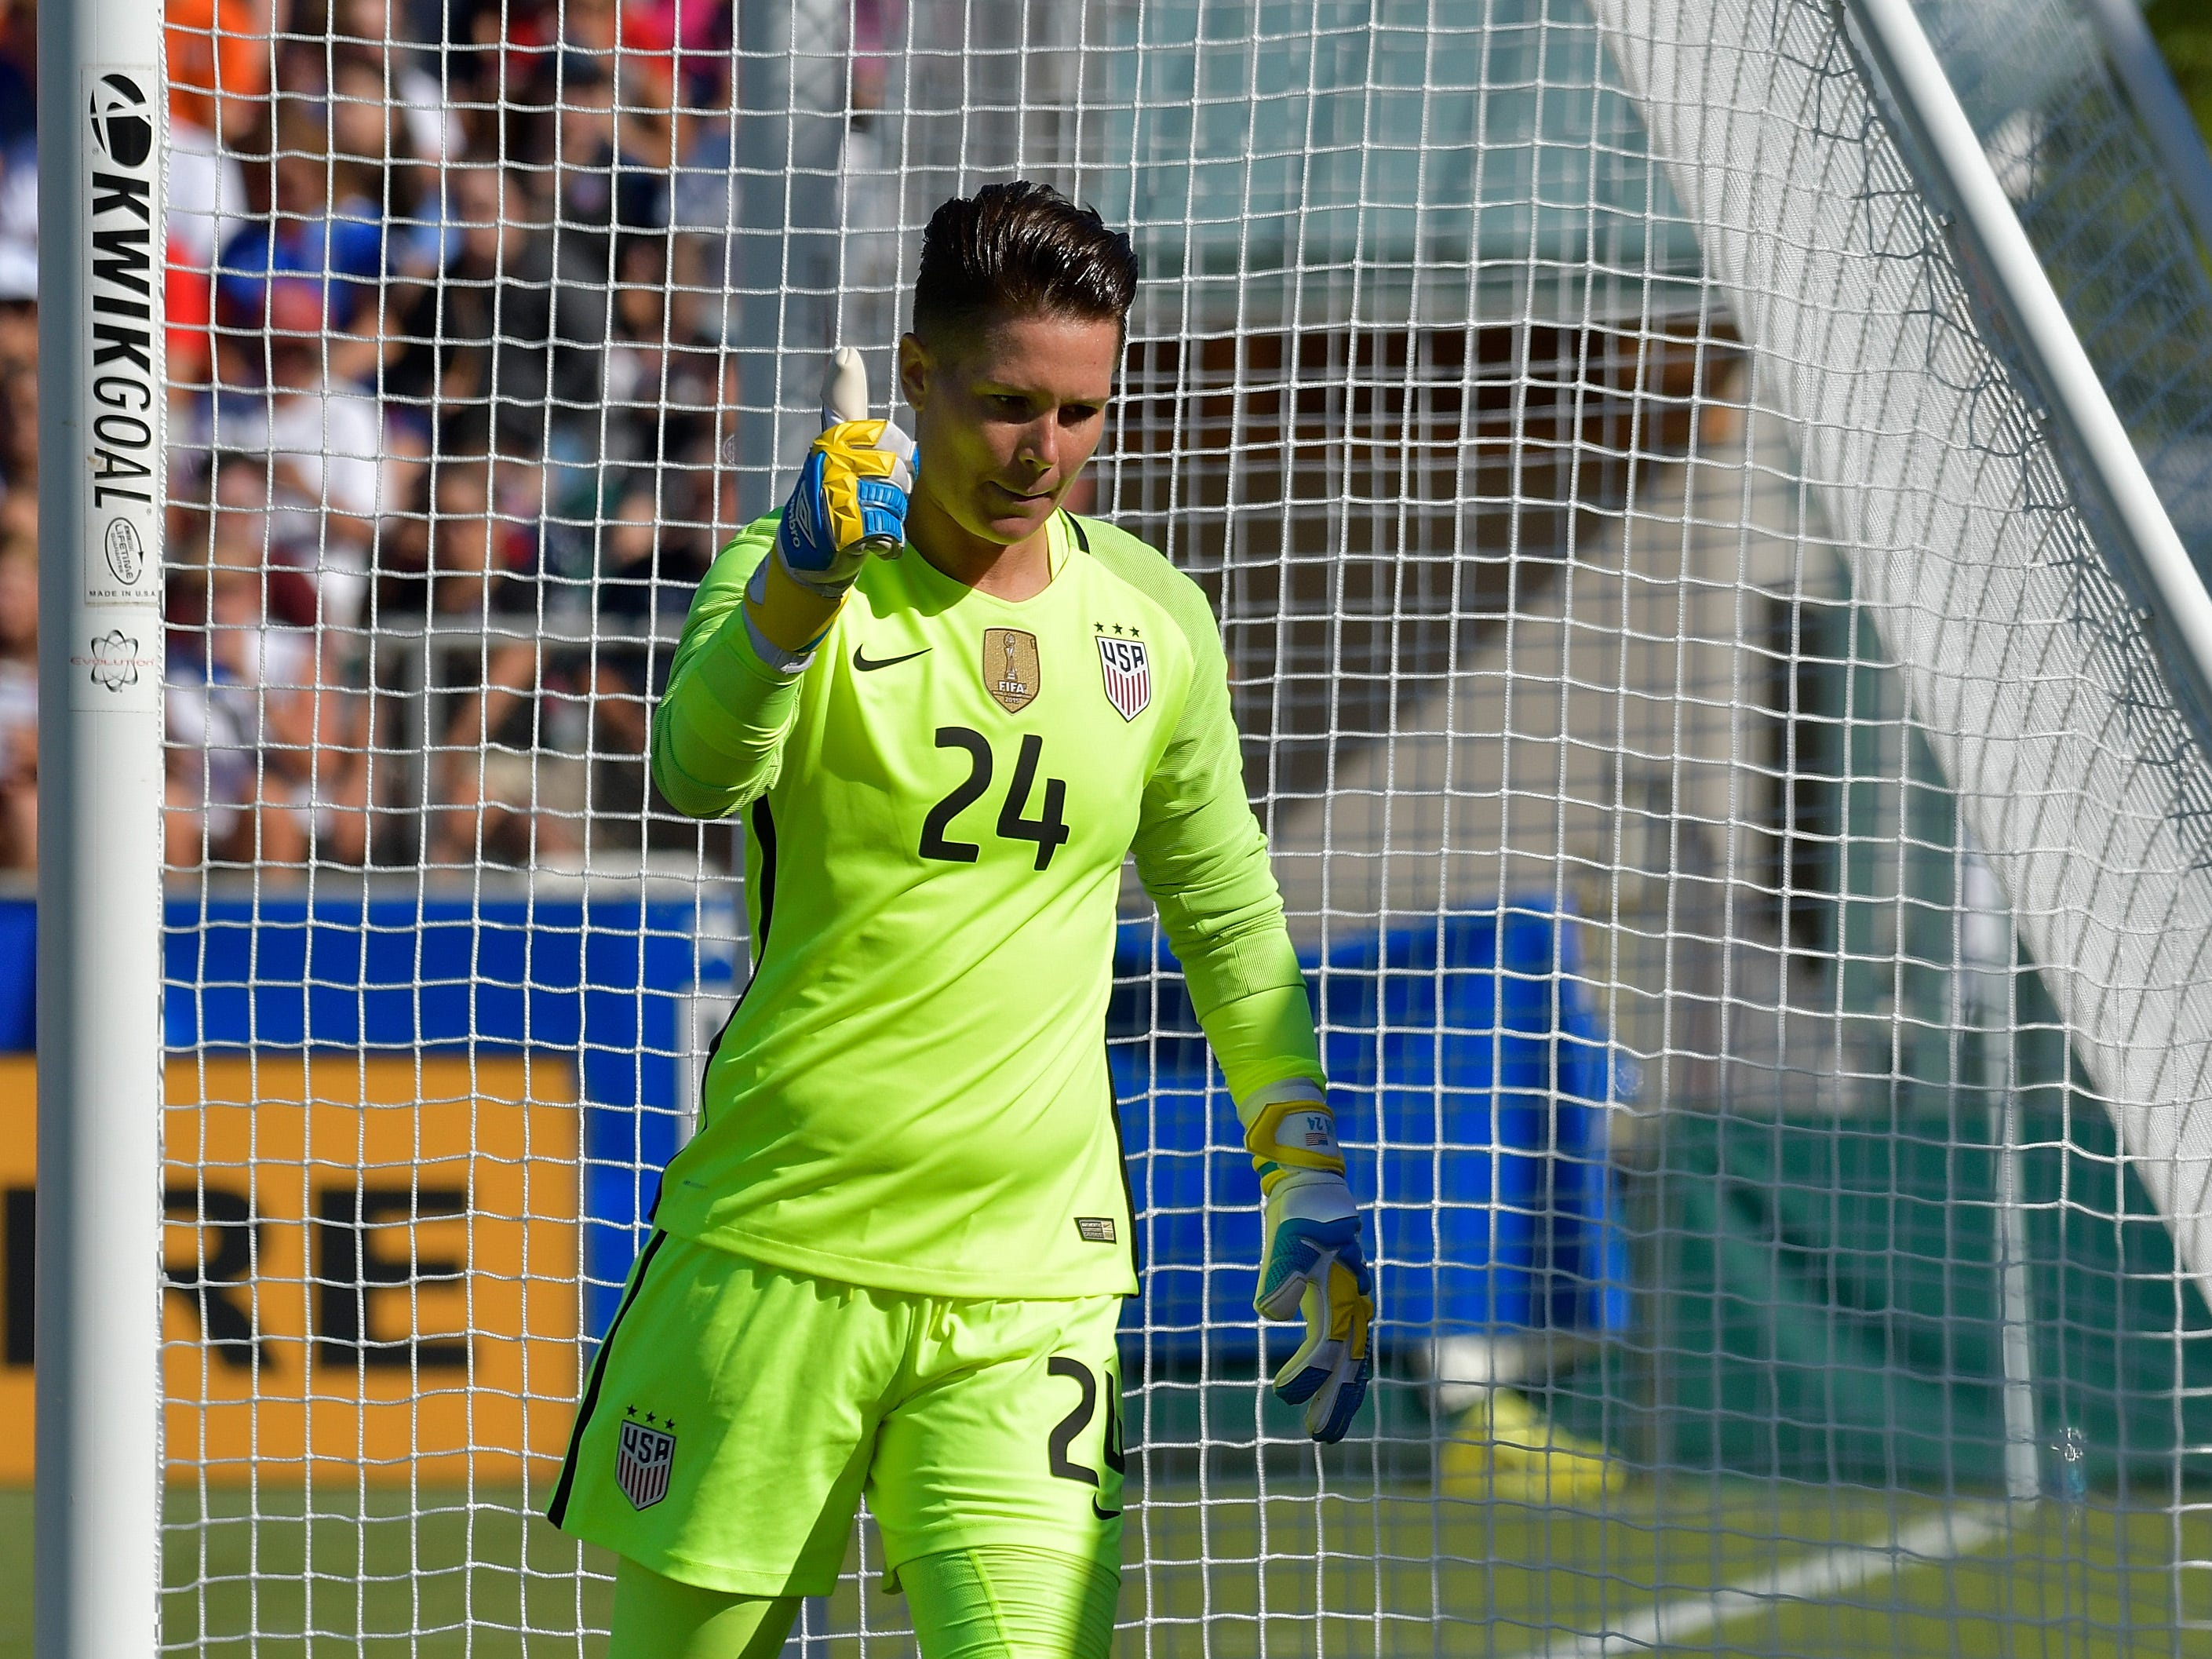 Ashlyn Harris of USA flashes a thumbs-up after making a save against Korea Republic during their game at WakeMed Soccer Park on October 22, 2017 in Cary, North Carolina.